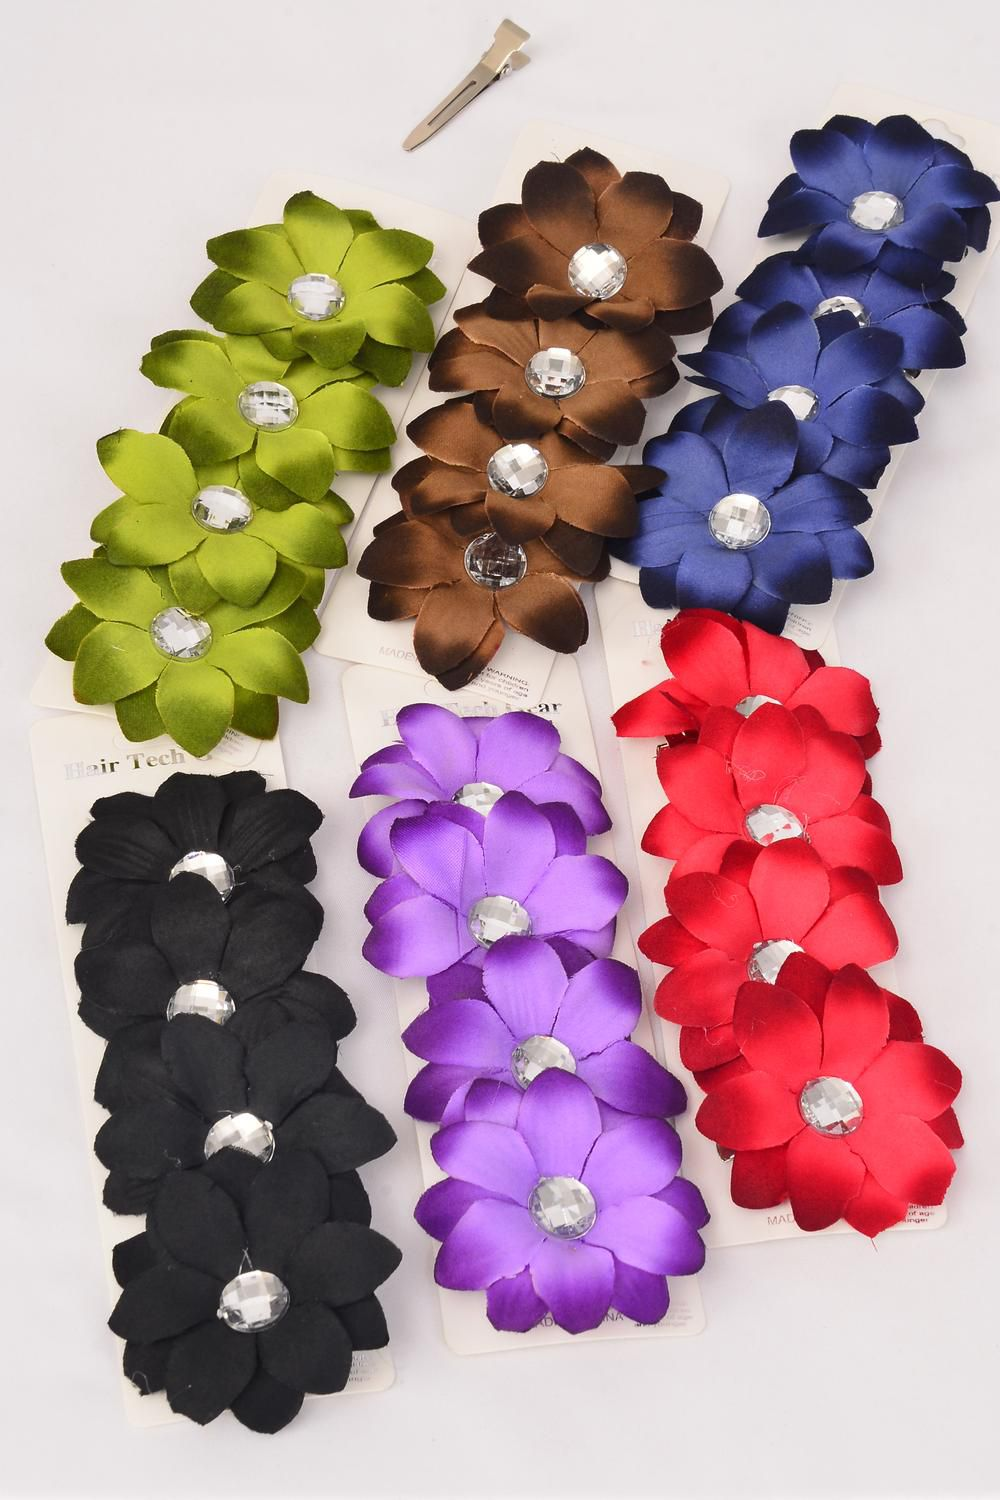 "Flowers 48 pcs Alligator Clip Flower Daisy & Clear Stone Dark Multi/DZ **Multi** Flower Size-2.75"" Wide,Alligator Clip,2 of each Color Asst,4 pcs per Card,12 card=DZ,UPC Code,W Clear Box -"